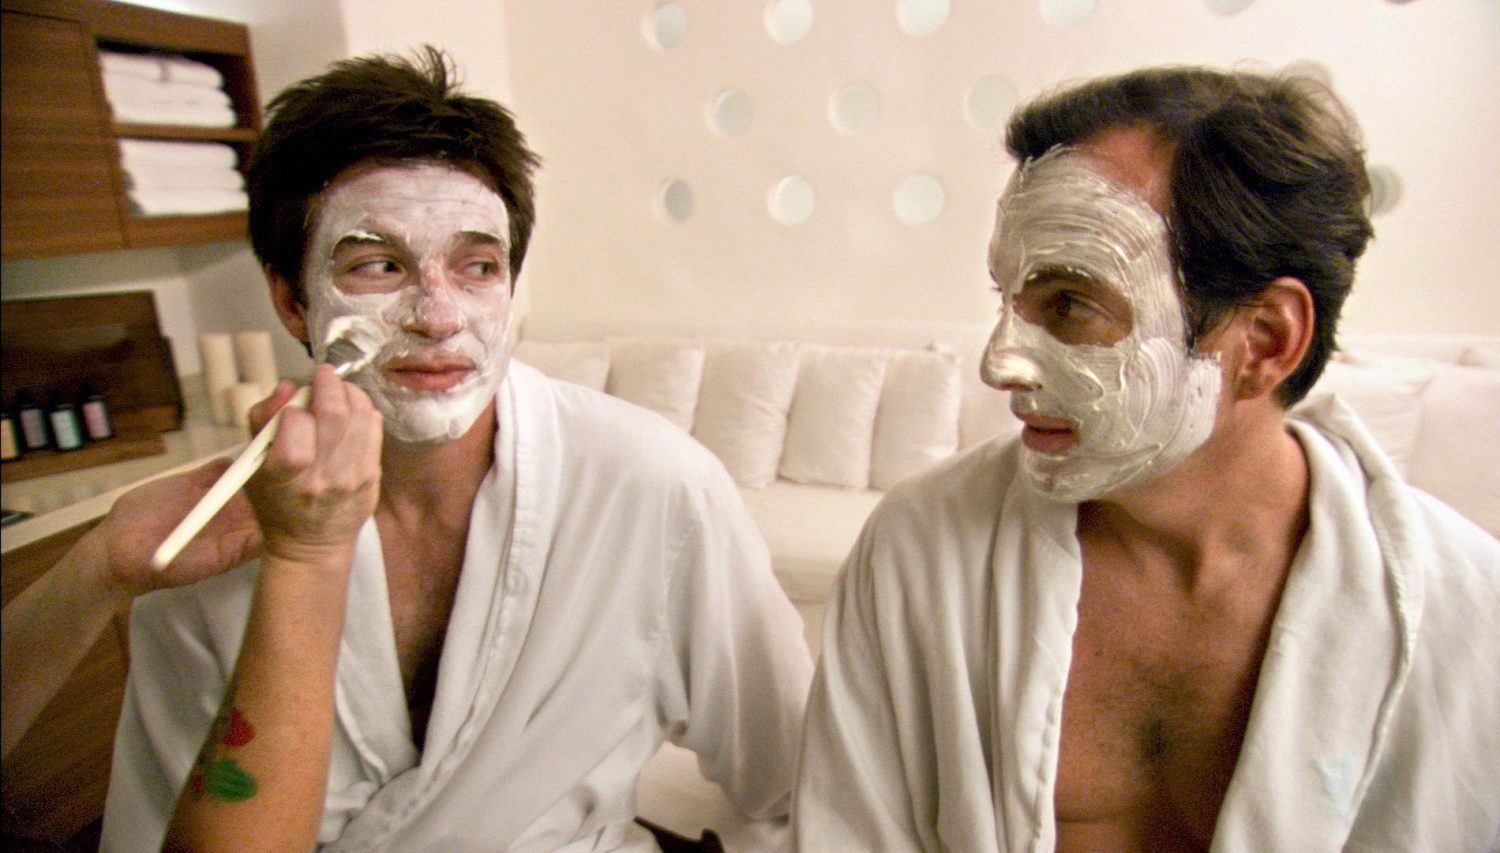 A Man's Guide To Spa Services (That He'll Really Like)